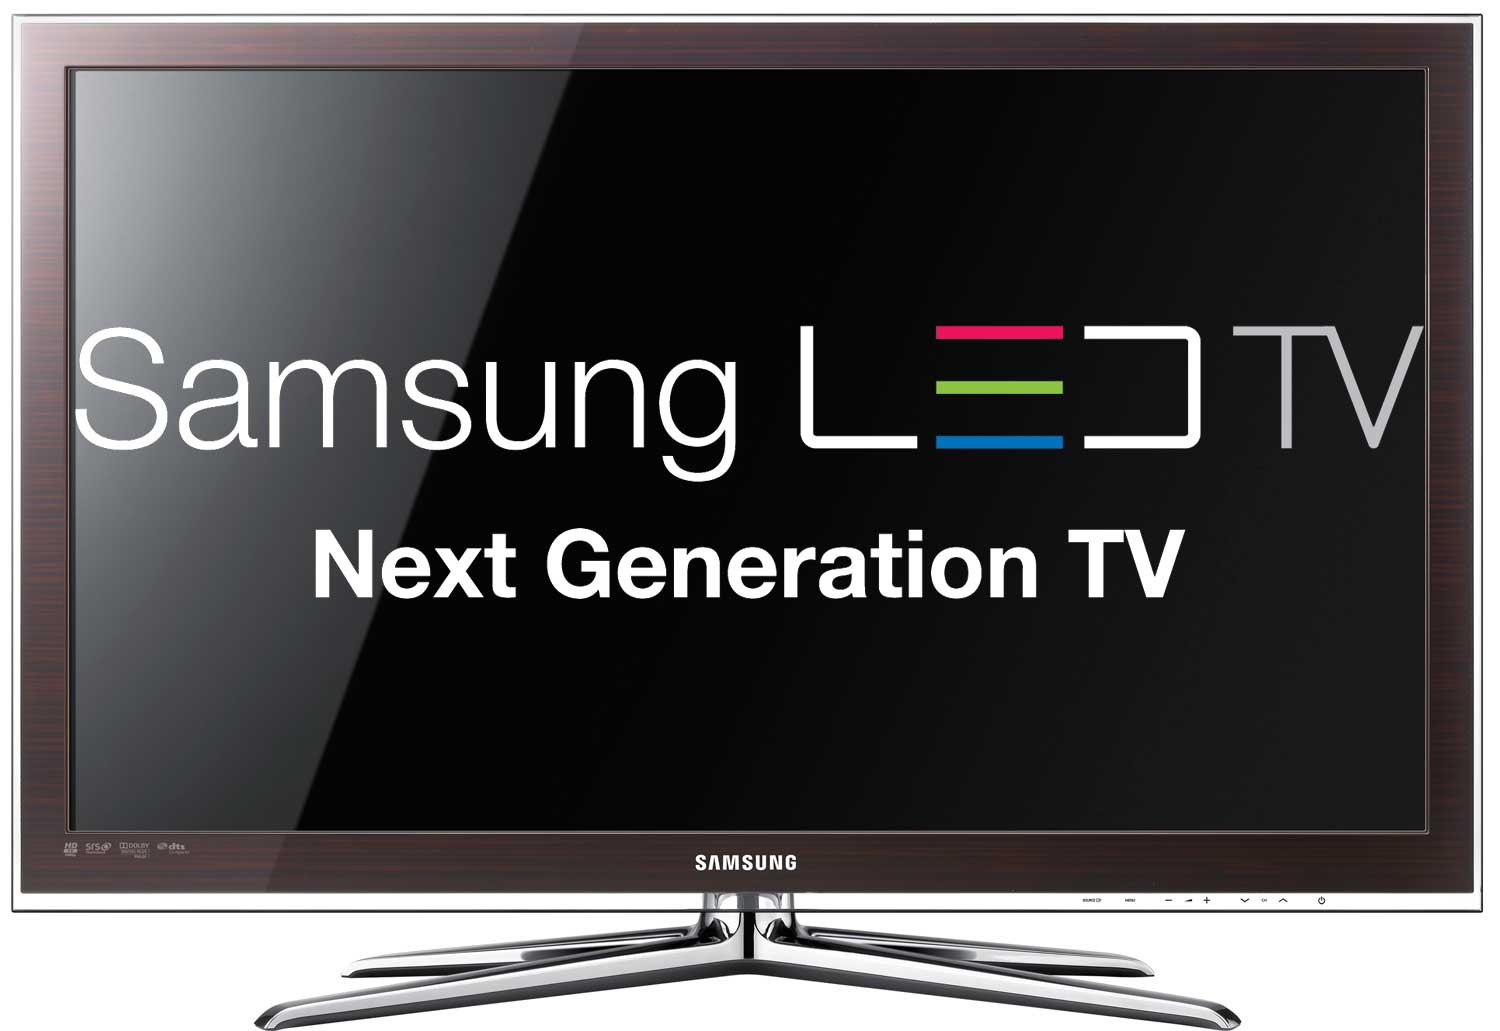 Samsung LED TV Repairs & Service